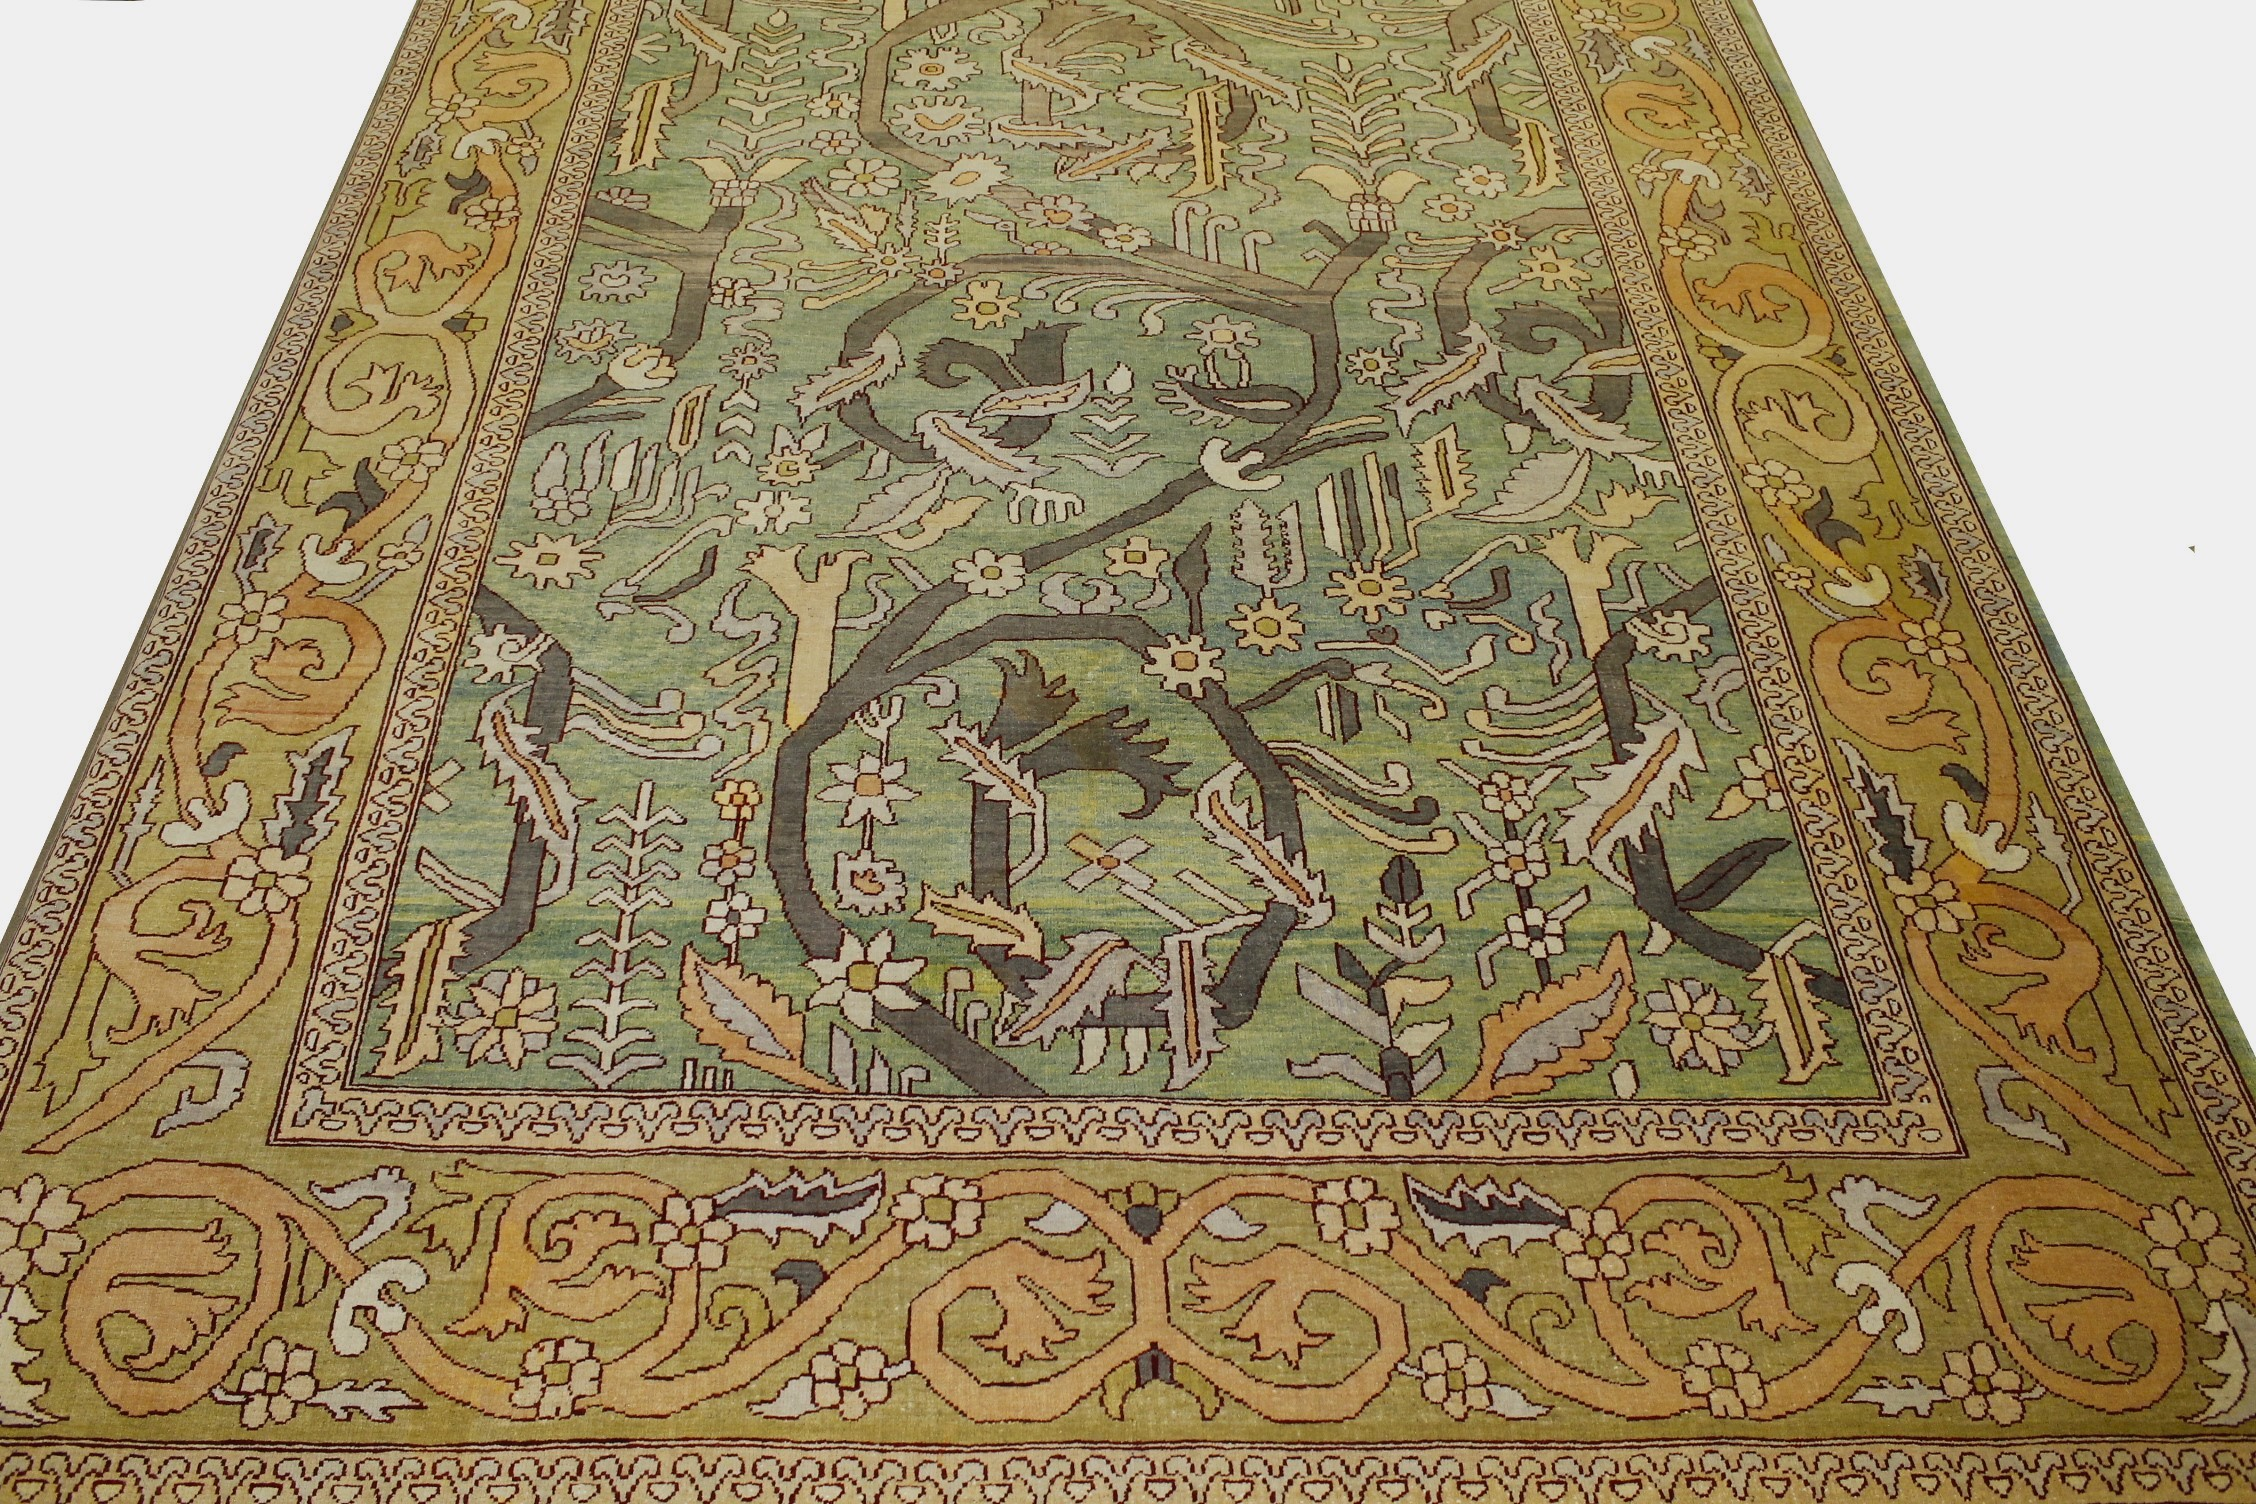 10x14 Oushak Hand Knotted Wool Area Rug - MR16042